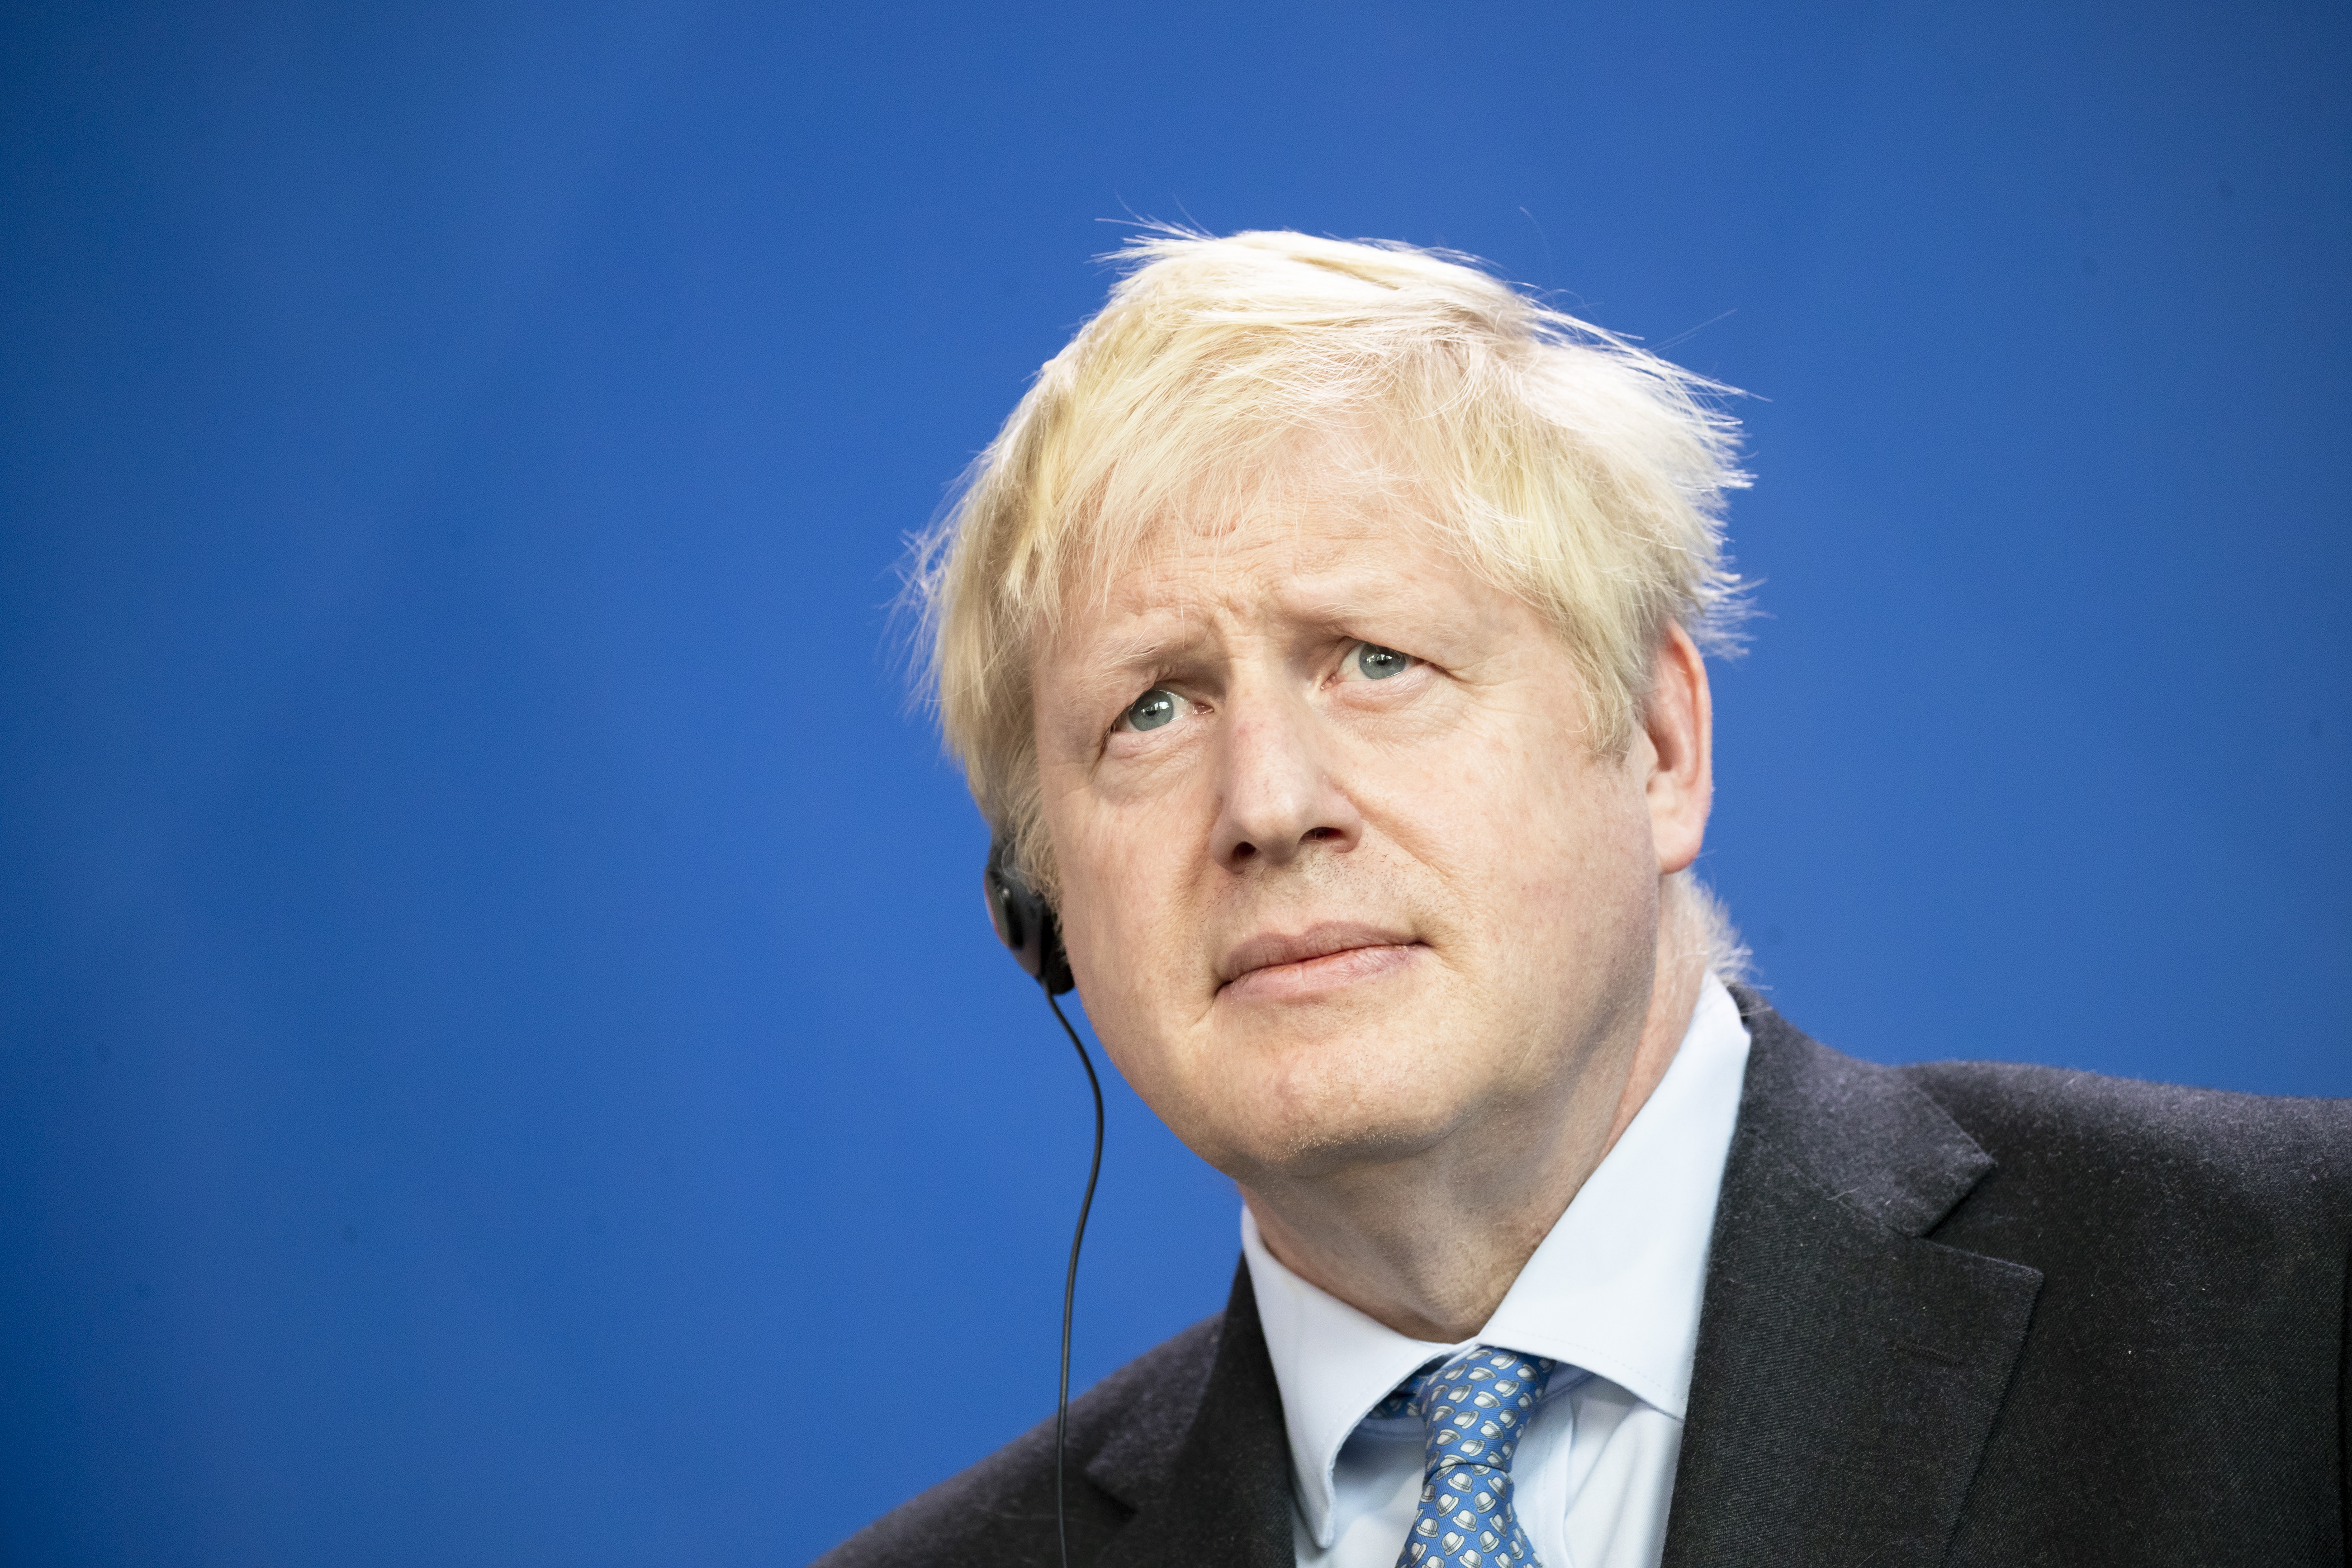 British Prime Minister Boris Johnson is pictured during a press conference at the Chancellery in Berlin on August 21, 2019.